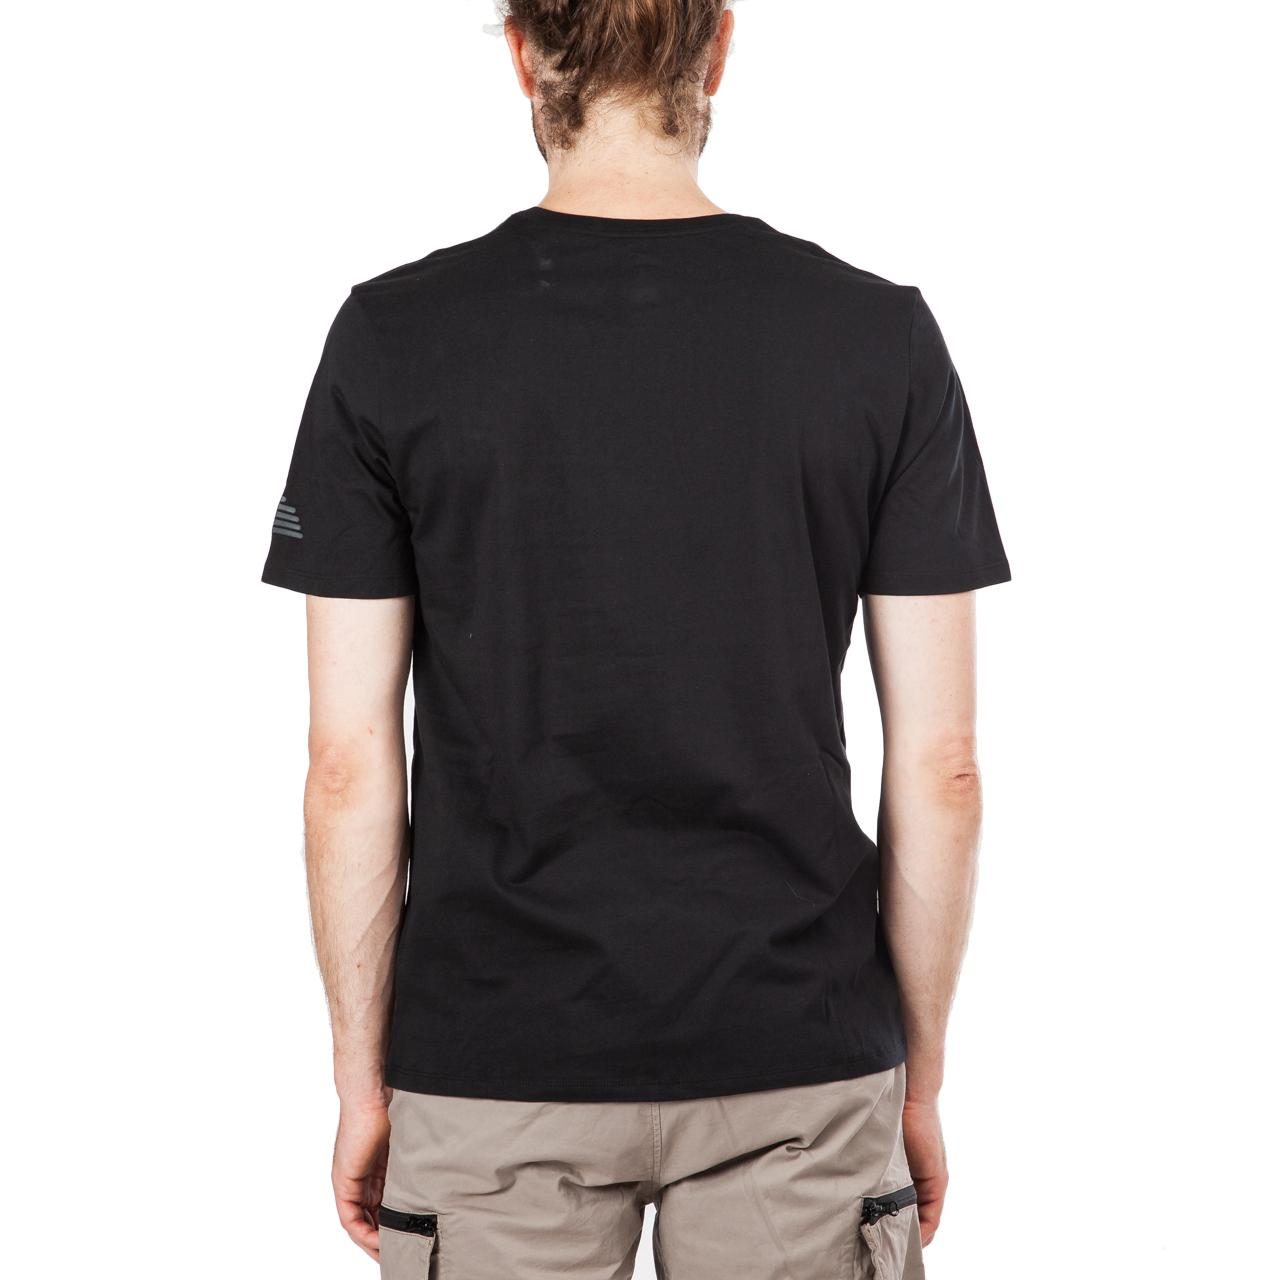 39c9f2192b9e Nike - Nike Air Jordan Mars Blackmon Photo T-shirt for Men - Lyst. View  fullscreen